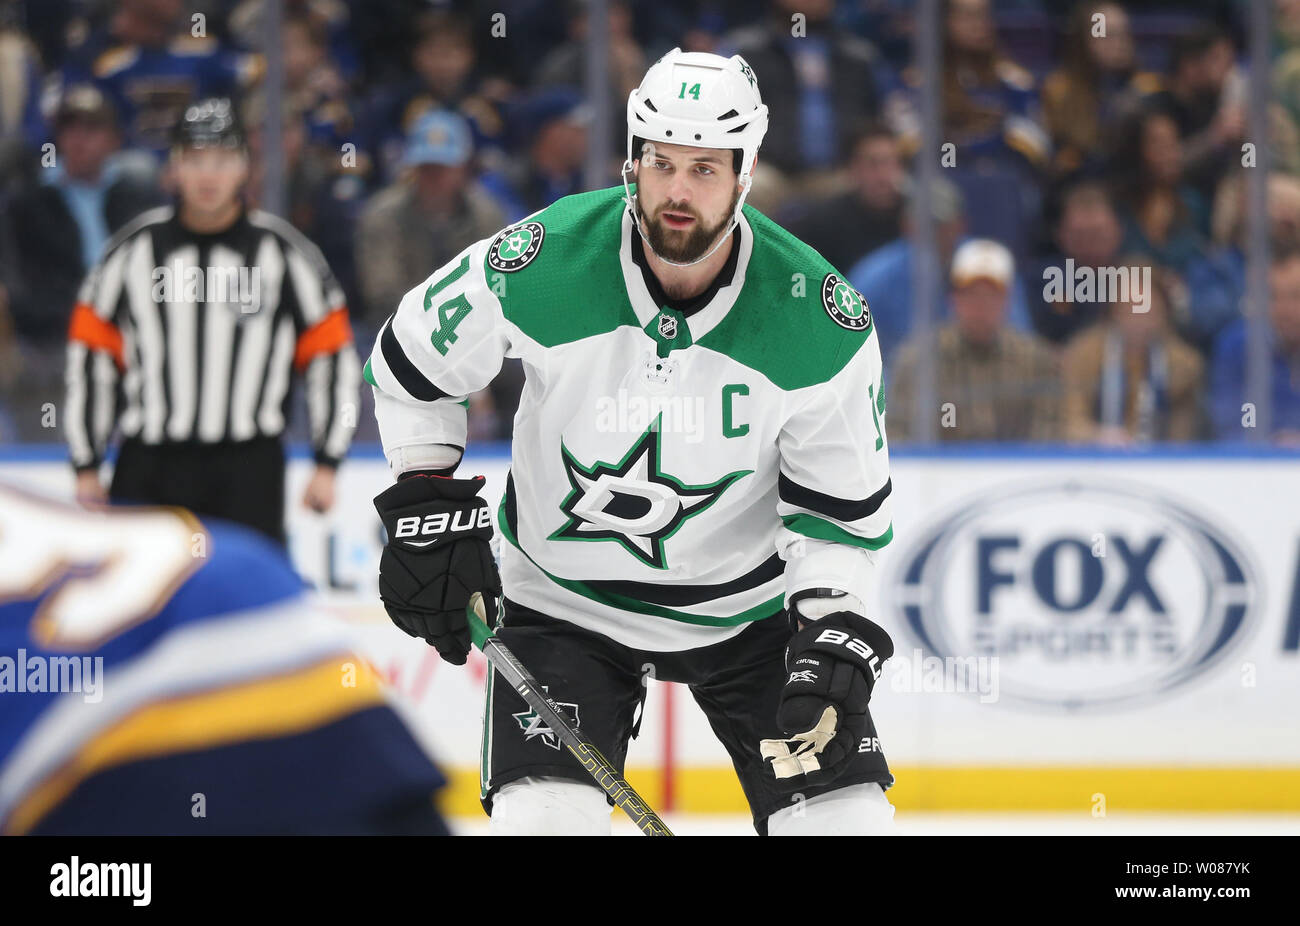 Dallas Stars Jamie Benn waits for the faceoff against the St. Louis in the first period at the Enterprise Center in St. Louis on January 8, 2019.  Photo by Bill Greenblatt/UPI - Stock Image